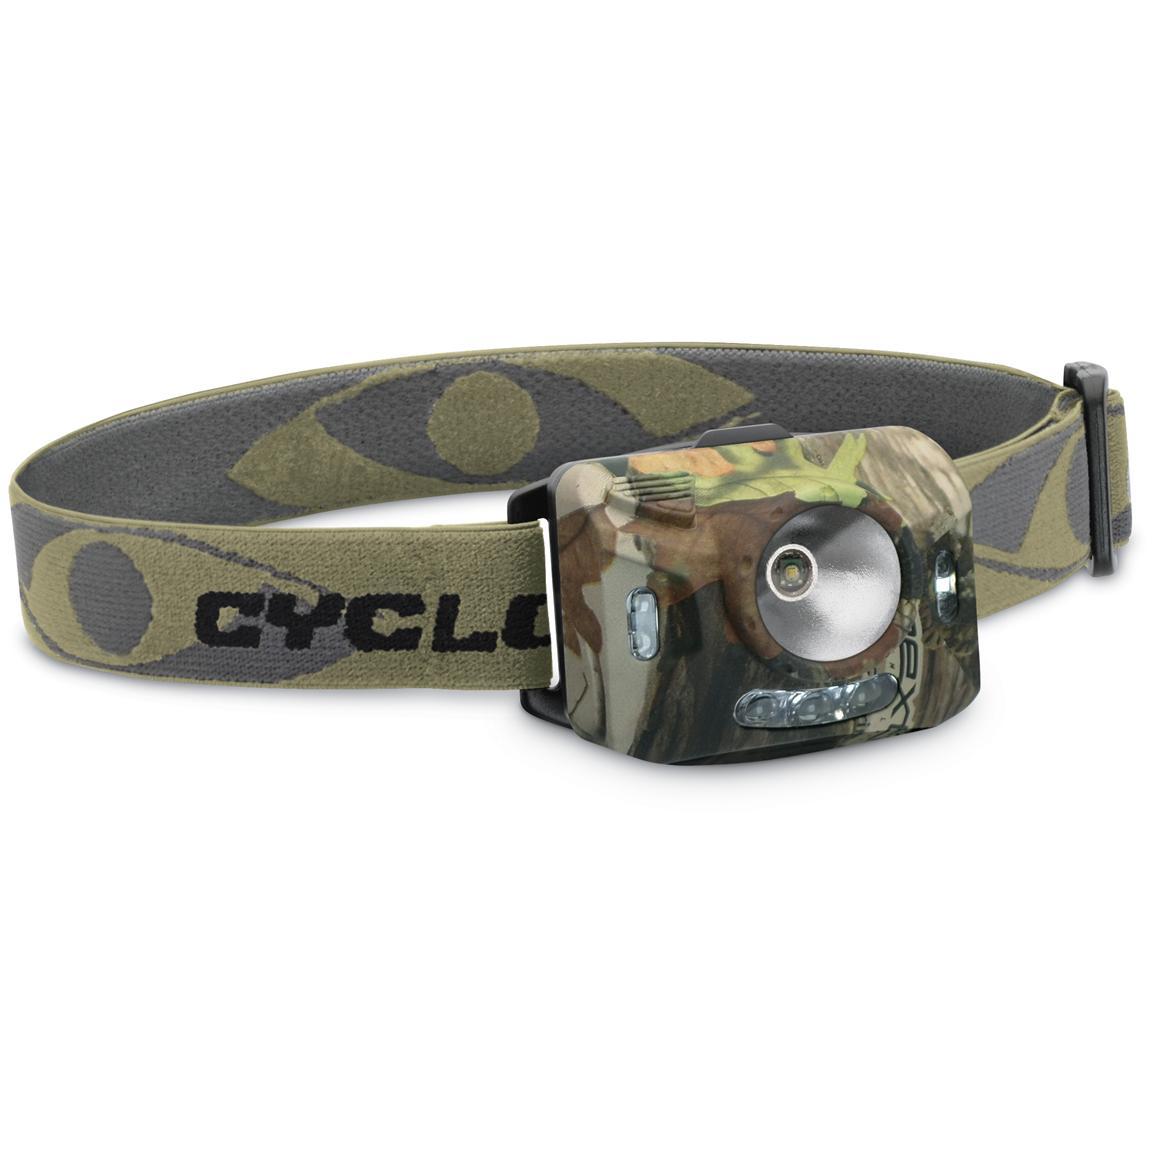 Cyclops® Ranger XP 126-lumen 4-stage Headlamp, NXT Camo